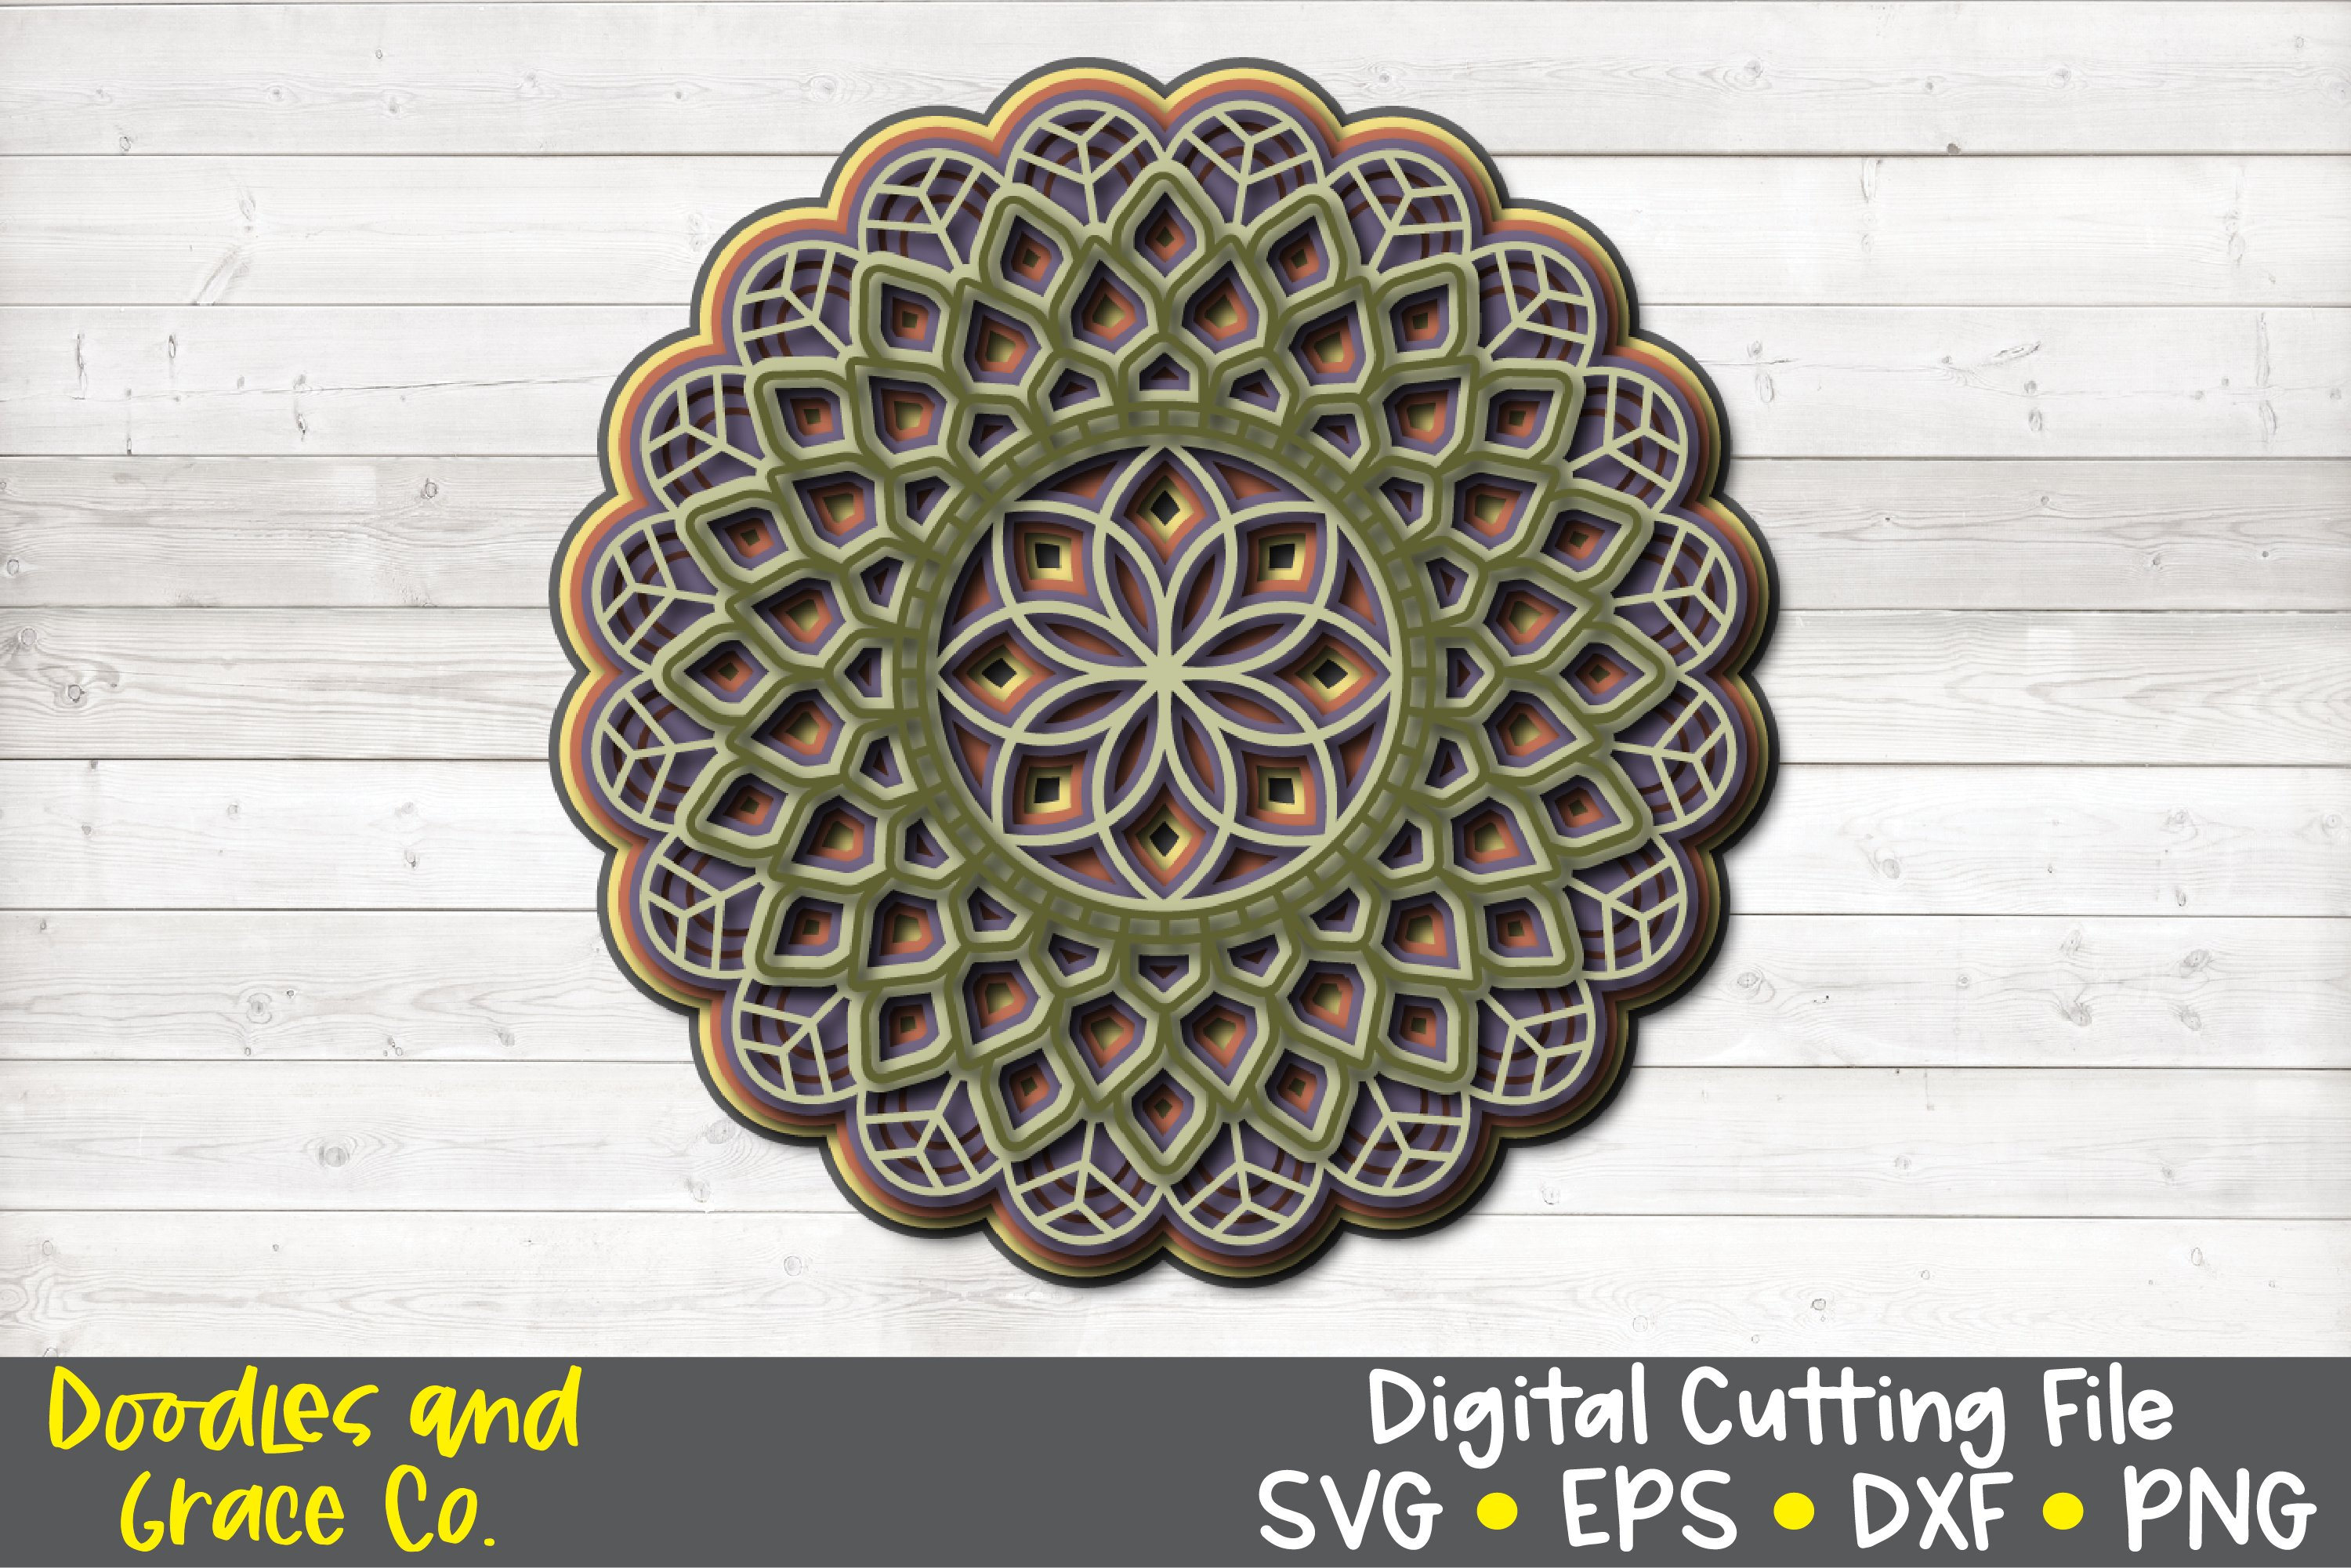 3D Layered Mandala Bundle - SVG - PNG - EPS - DXF example image 6